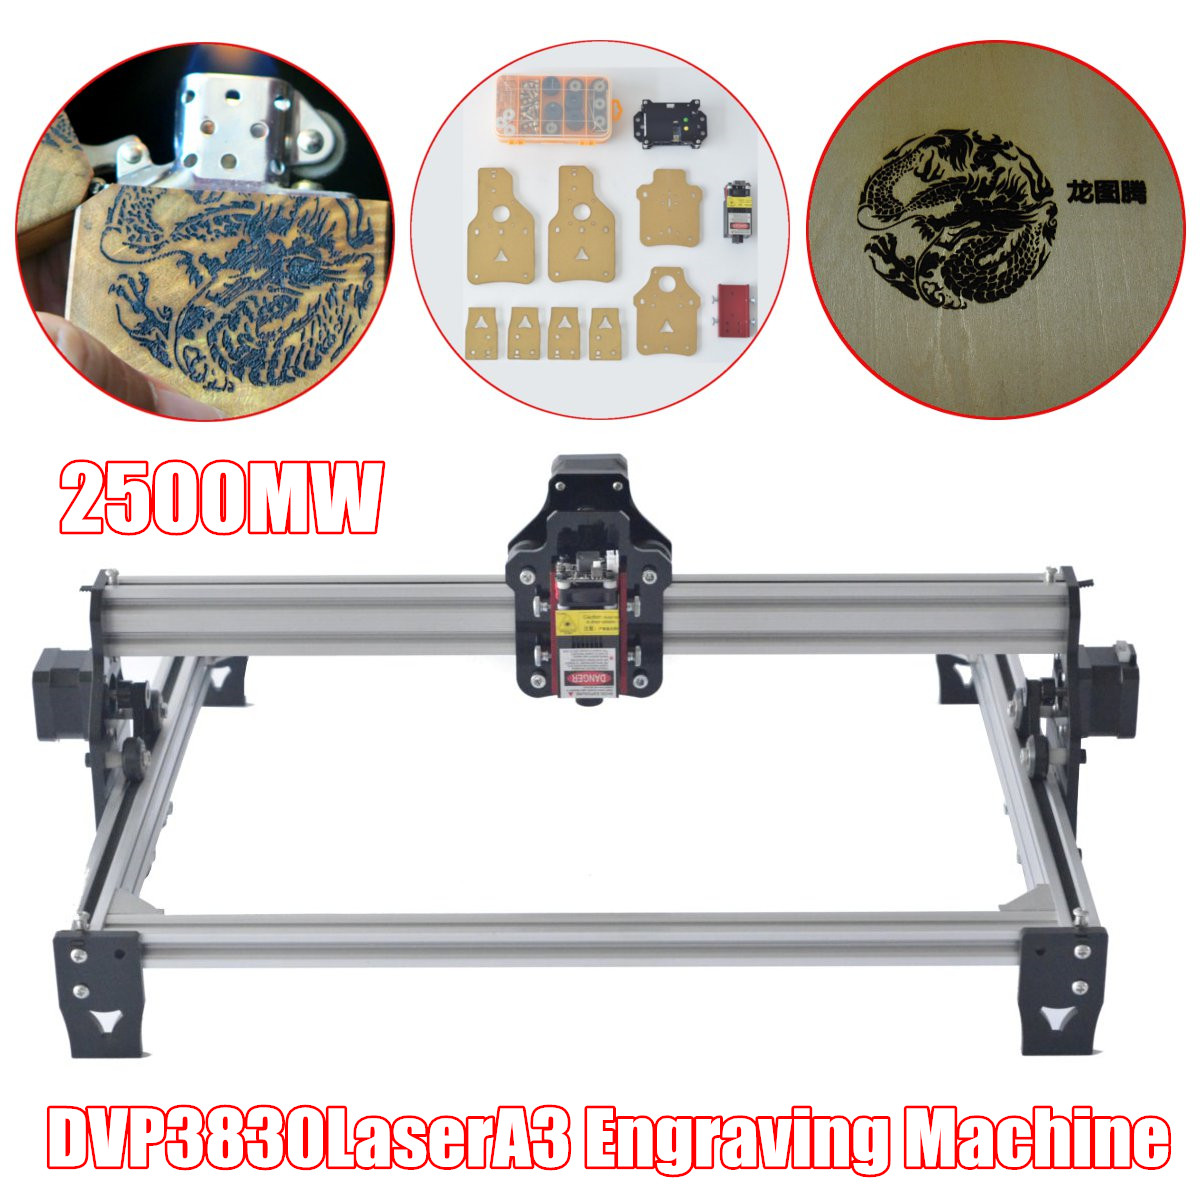 2500mw DVP 3830 Laser A3 Engraving Machine,Wood Router,laser cutter,DIY Laser Engraver Machine,cnc router,best Advanced toys цены